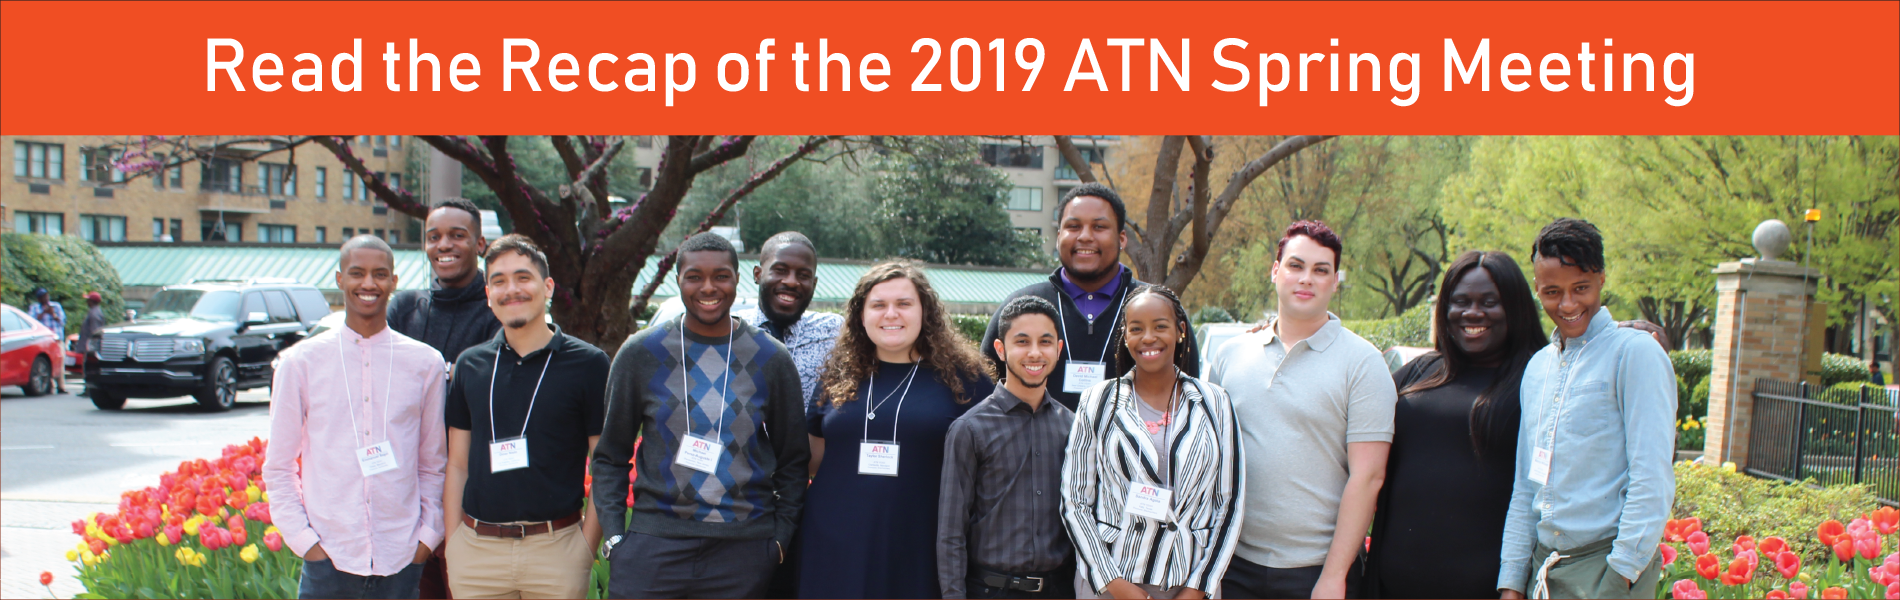 Read the Recap of the 2019 ATN Spring Meeting - click here